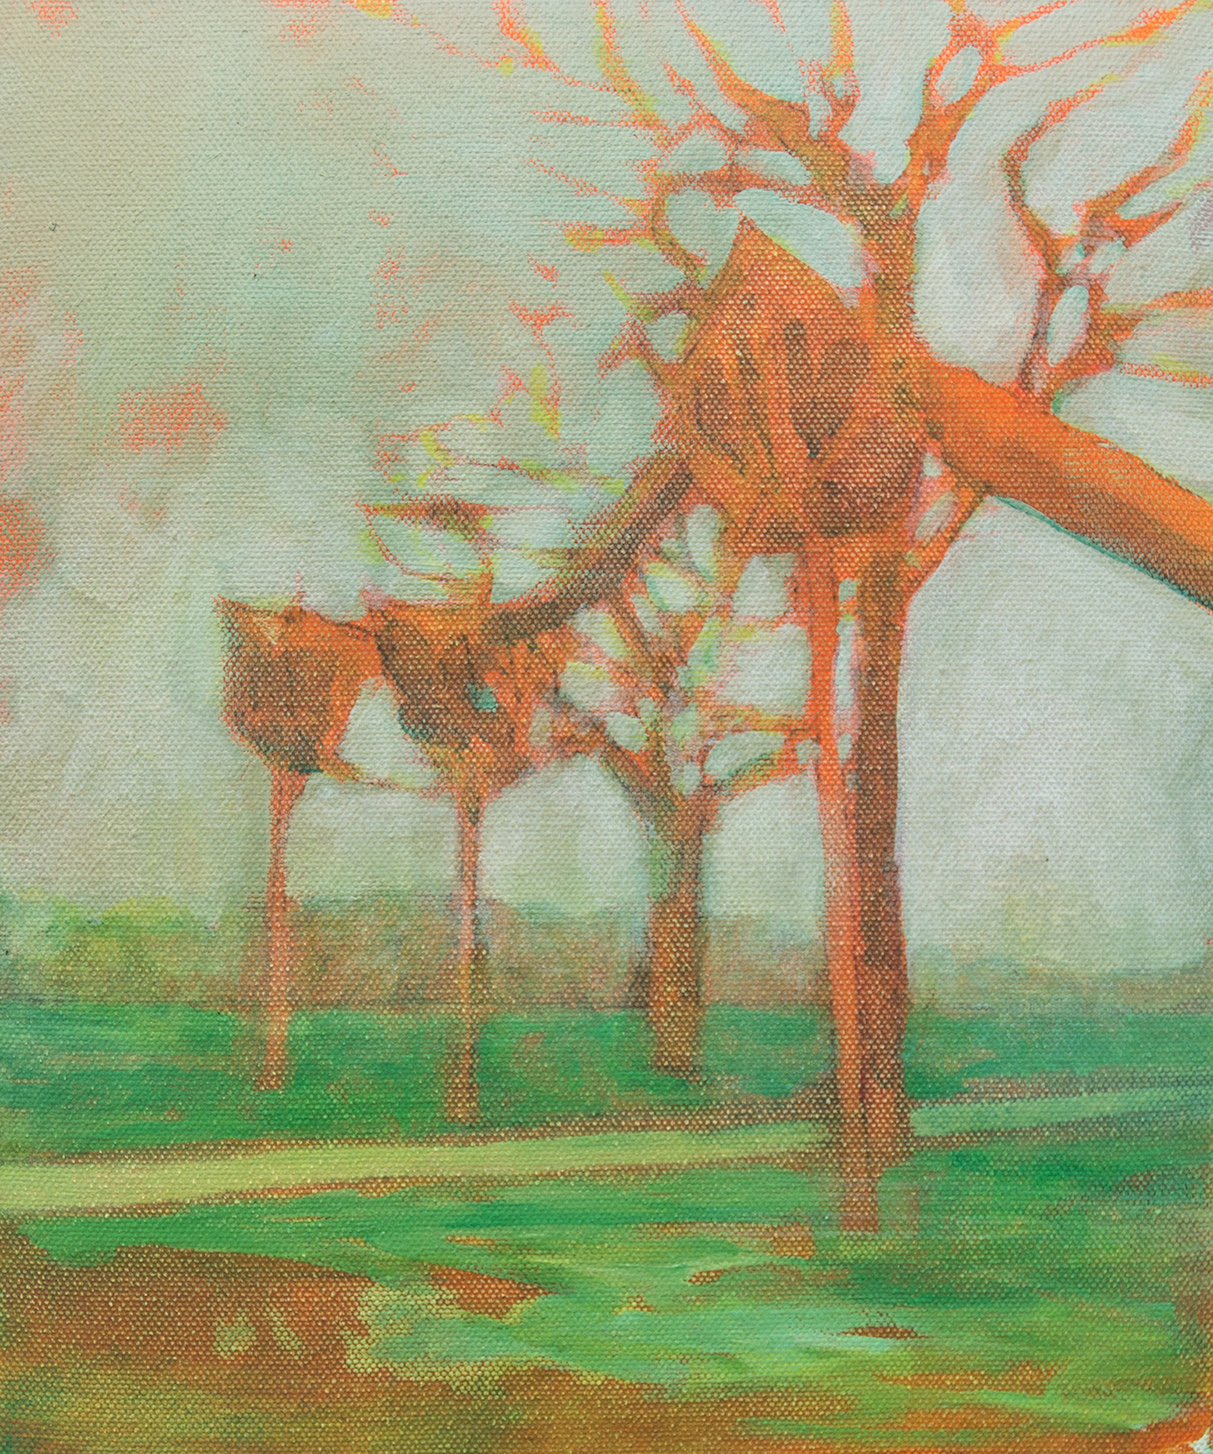 PS1542 pp tree walk, 30 x 25cm, oil on canvas, 2015 email